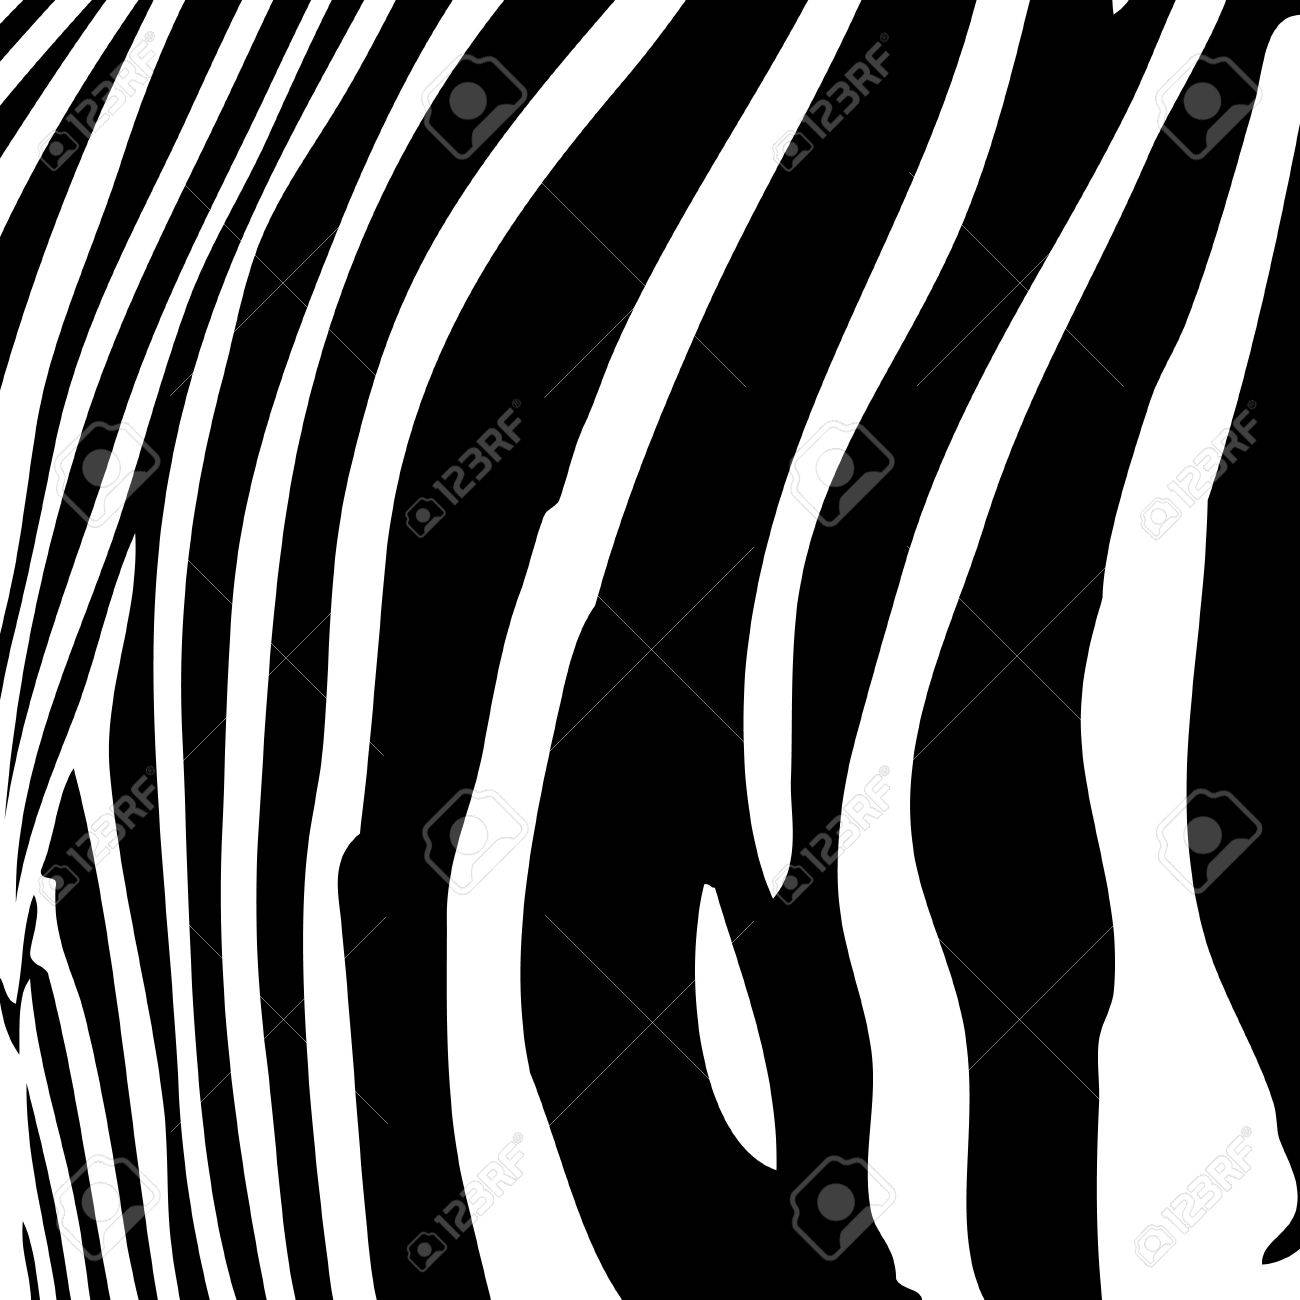 Zebra stripes pattern in black and white that works great as a background. - 4349350